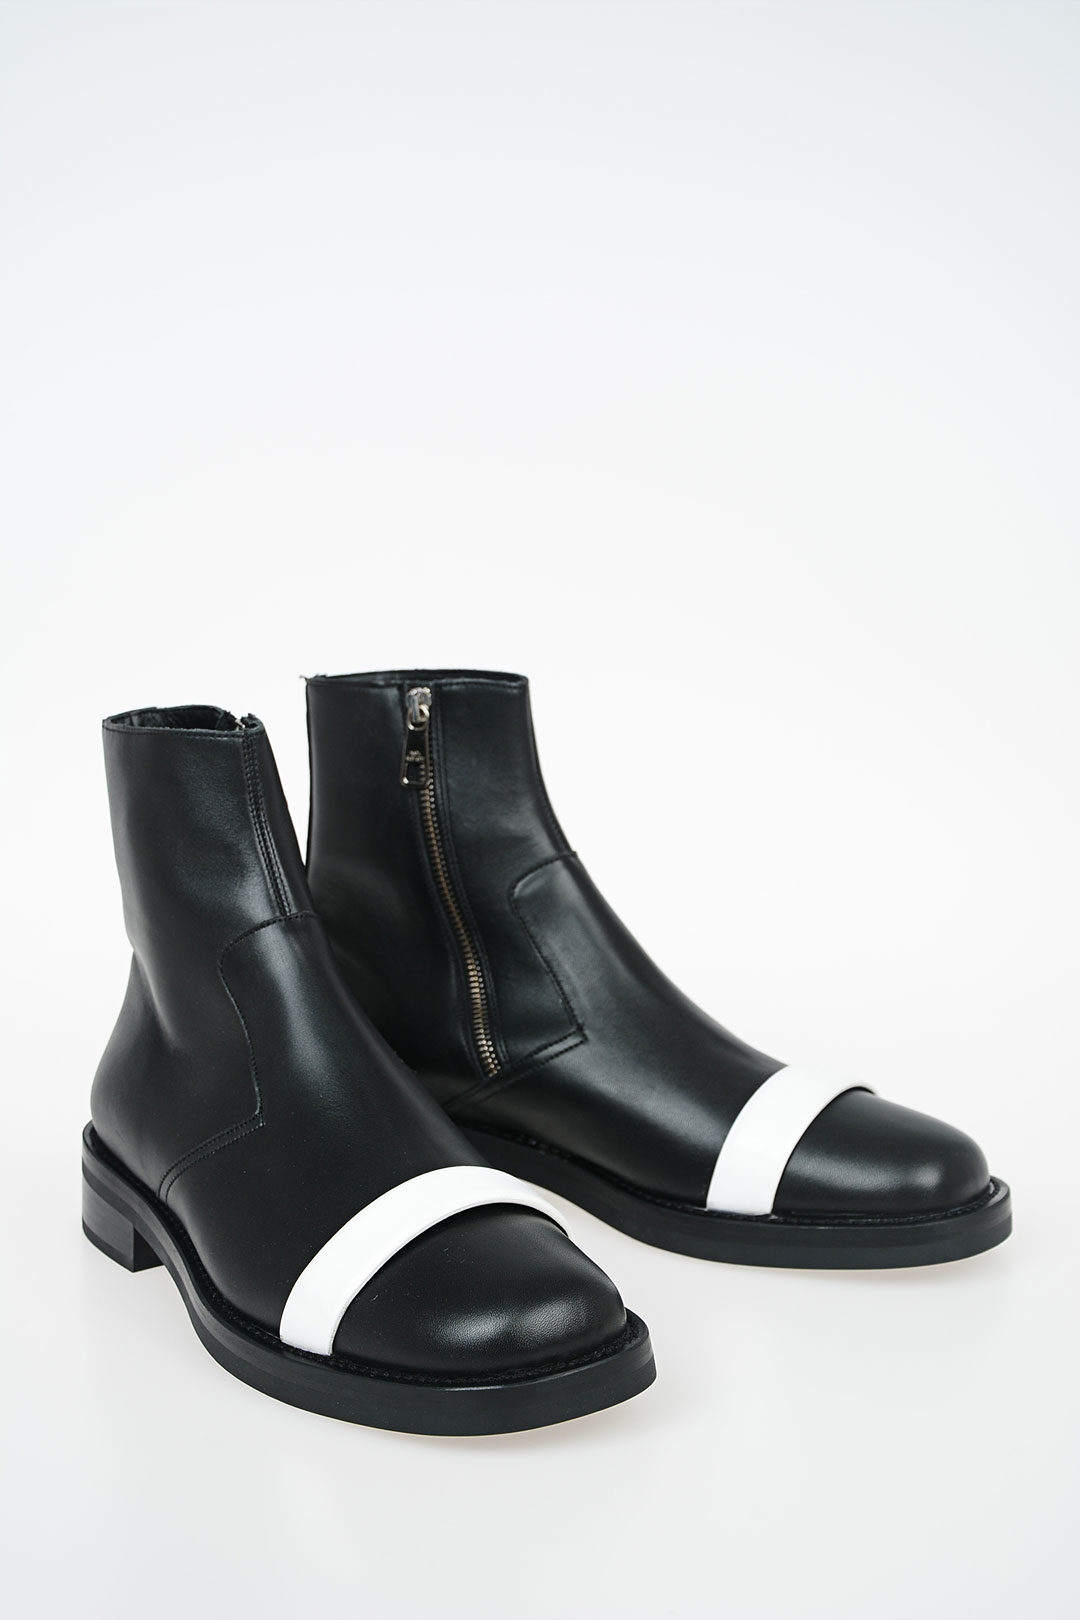 shop for pretty cool super popular Leather BIKER Ankle Boots